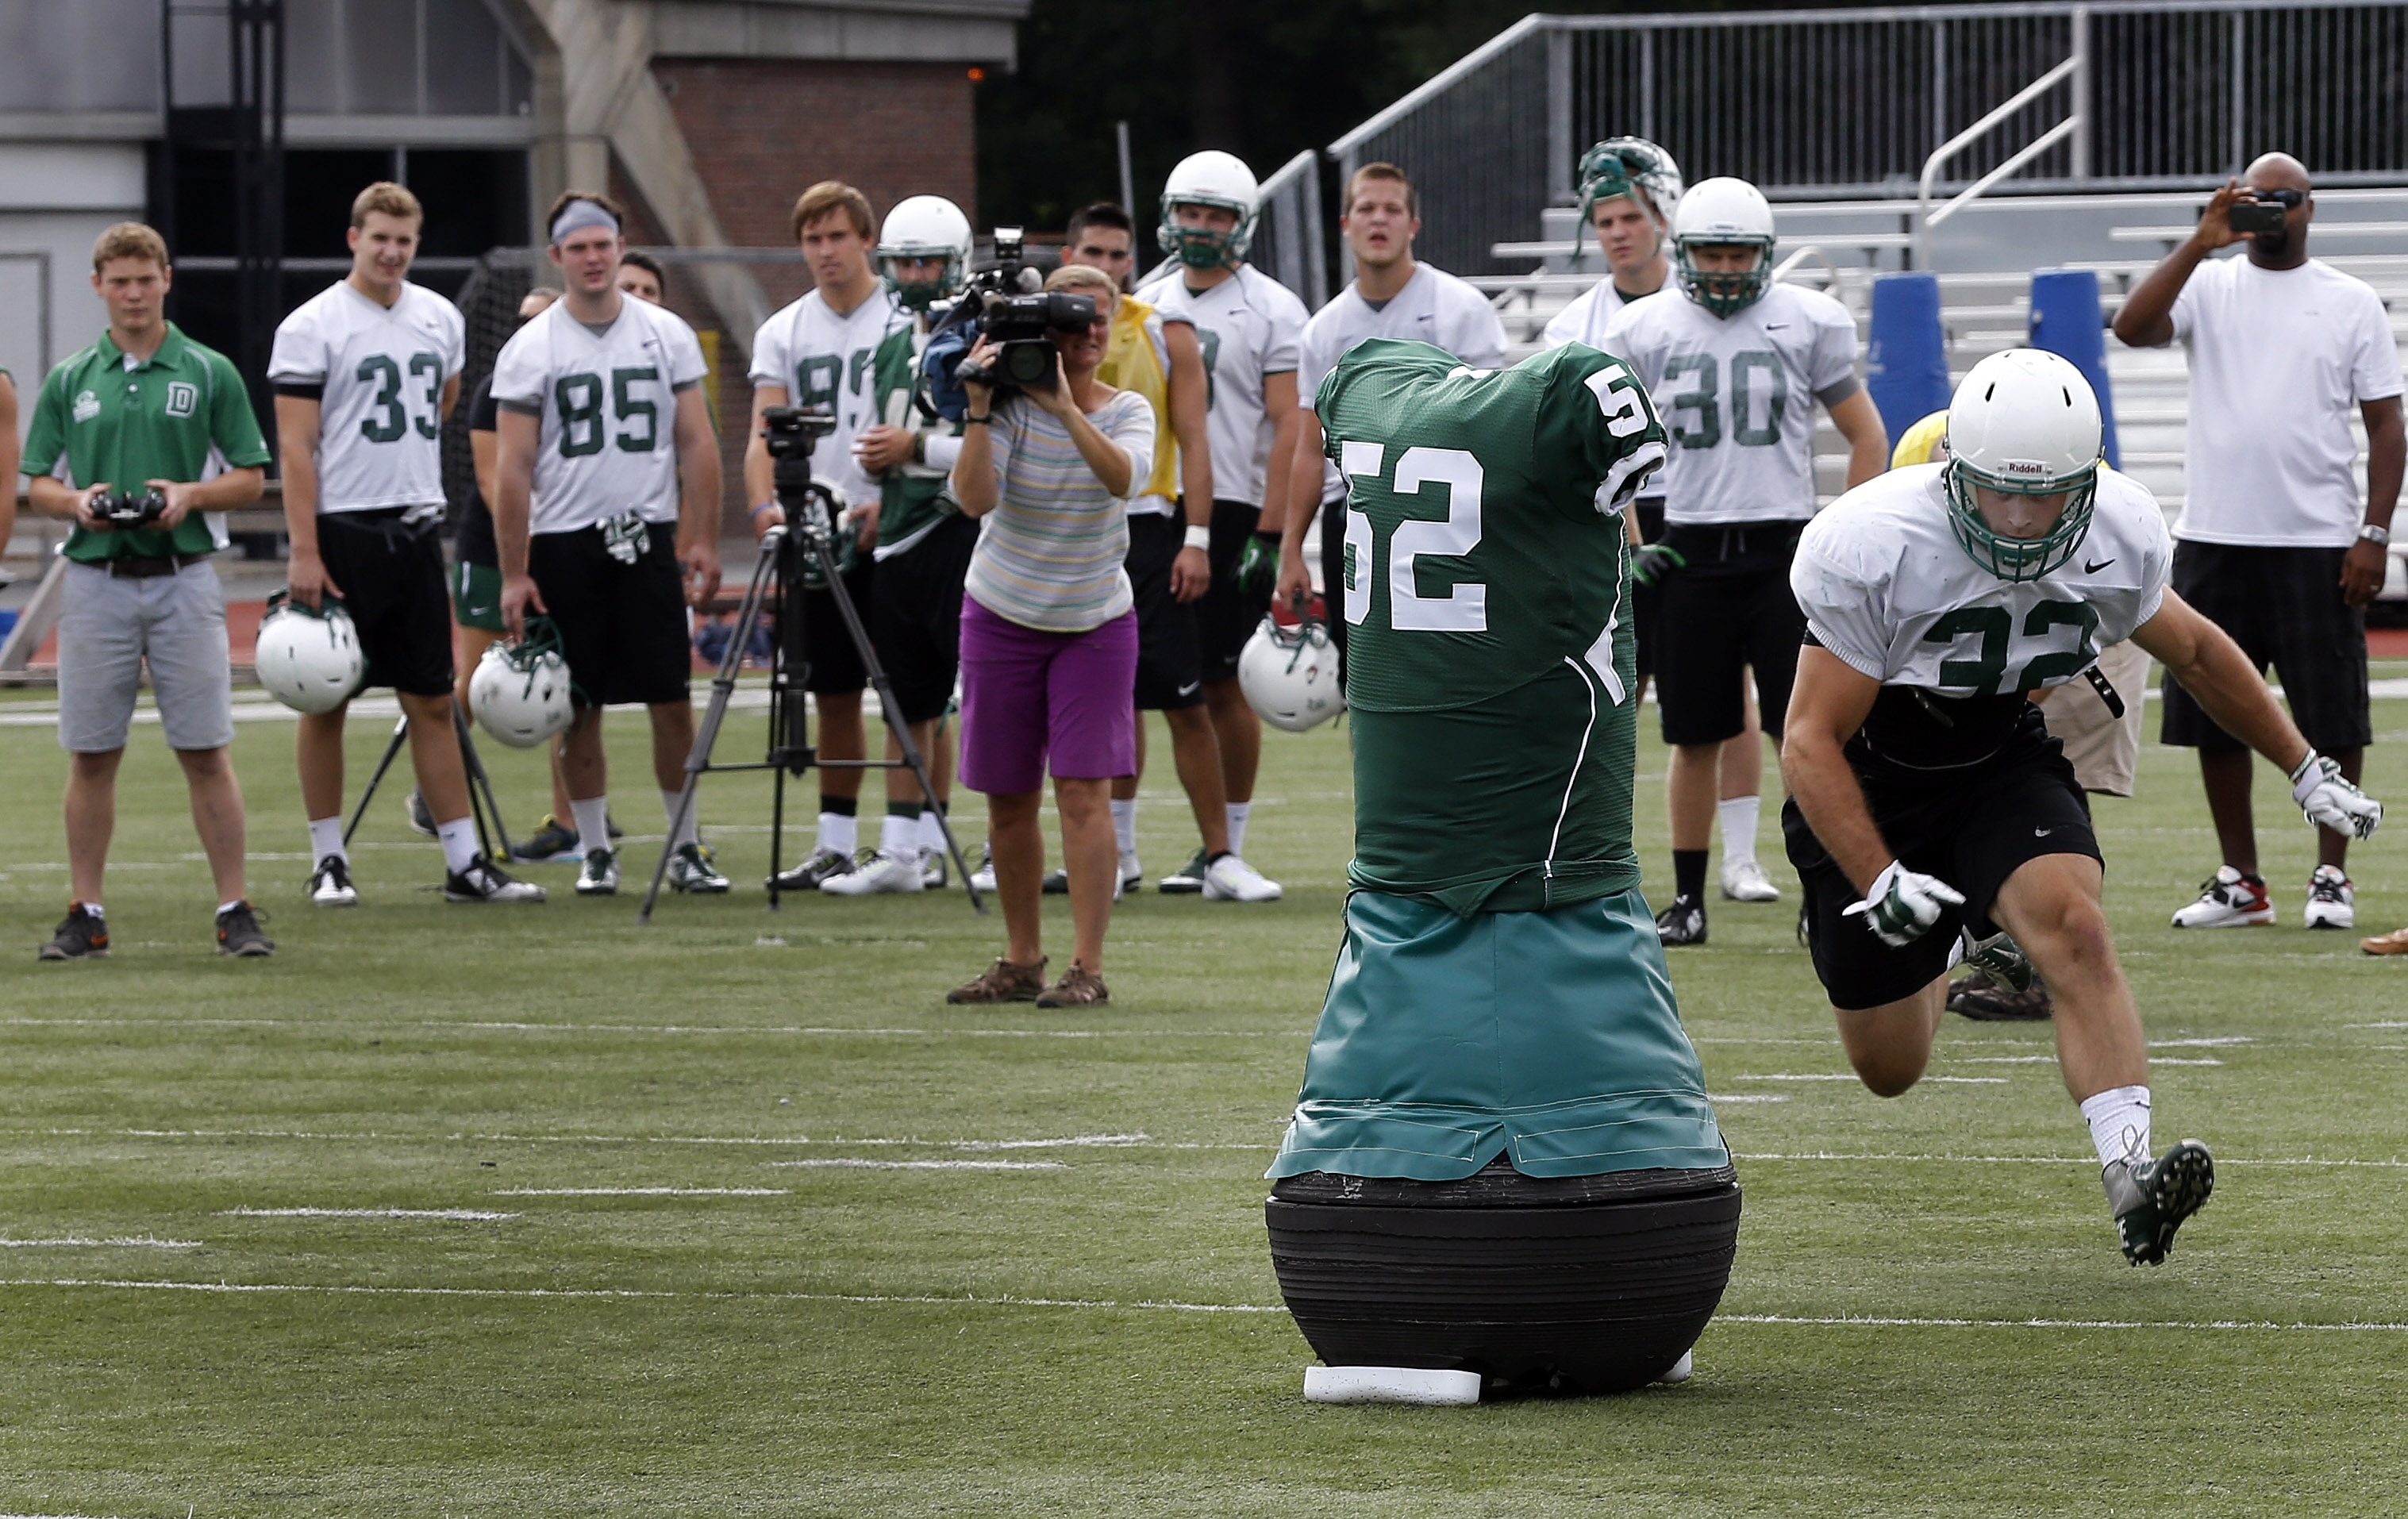 College football practice at Dartmouth in Hanover, NH on Aug. 26, 2015.